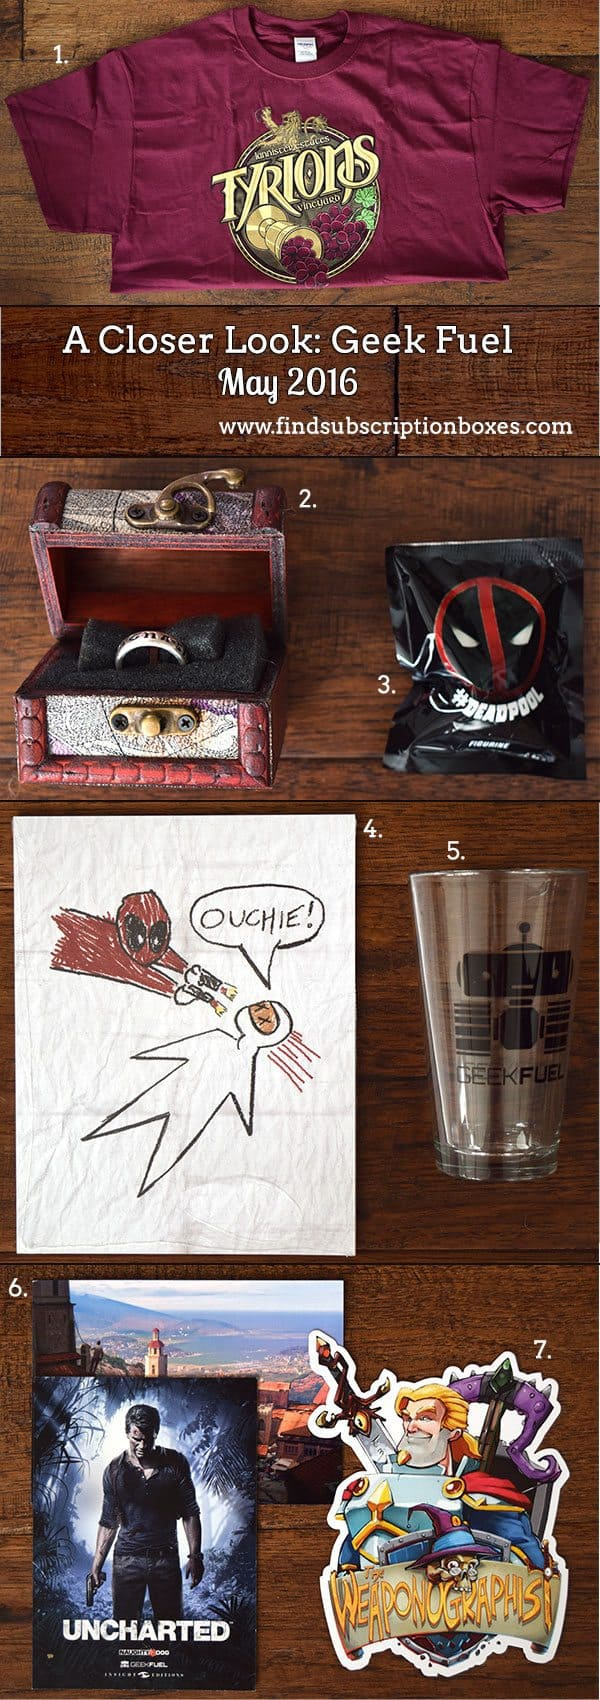 Geek Fuel May 2016 Box Review - Inside the Box